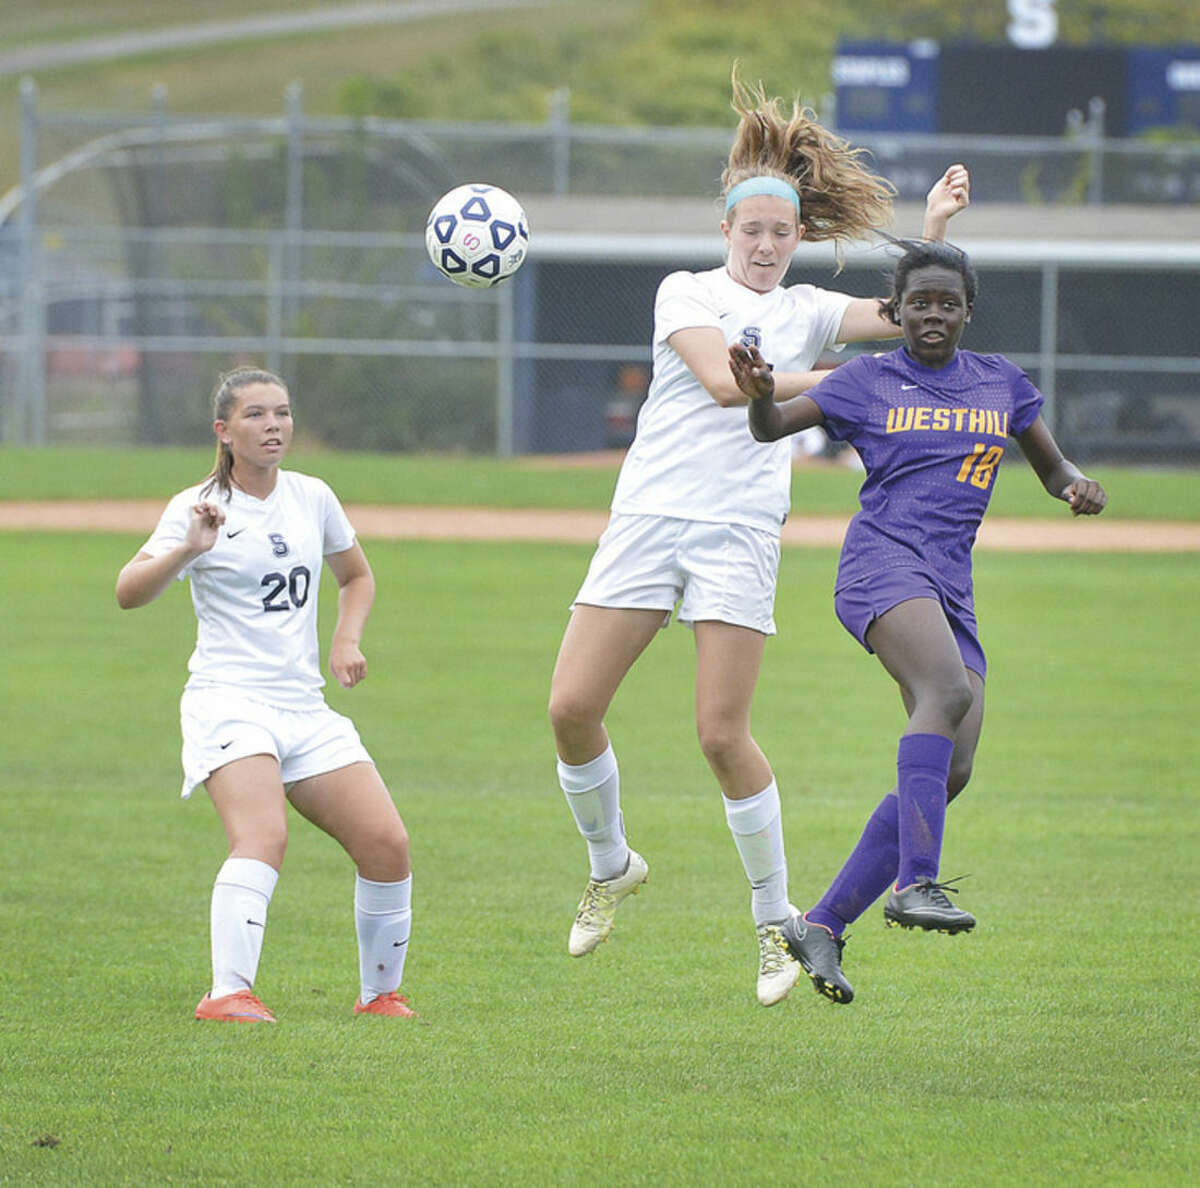 Hour photo/Alex von Kleydorff Staples' Sally McGee, center, battles Westhill's Chelsea Demond, right, for an air ball as the Wreckers' Annie Amacker (20) looks on during Tuesday's FCIAC girls soccer game at Loeffler Field.